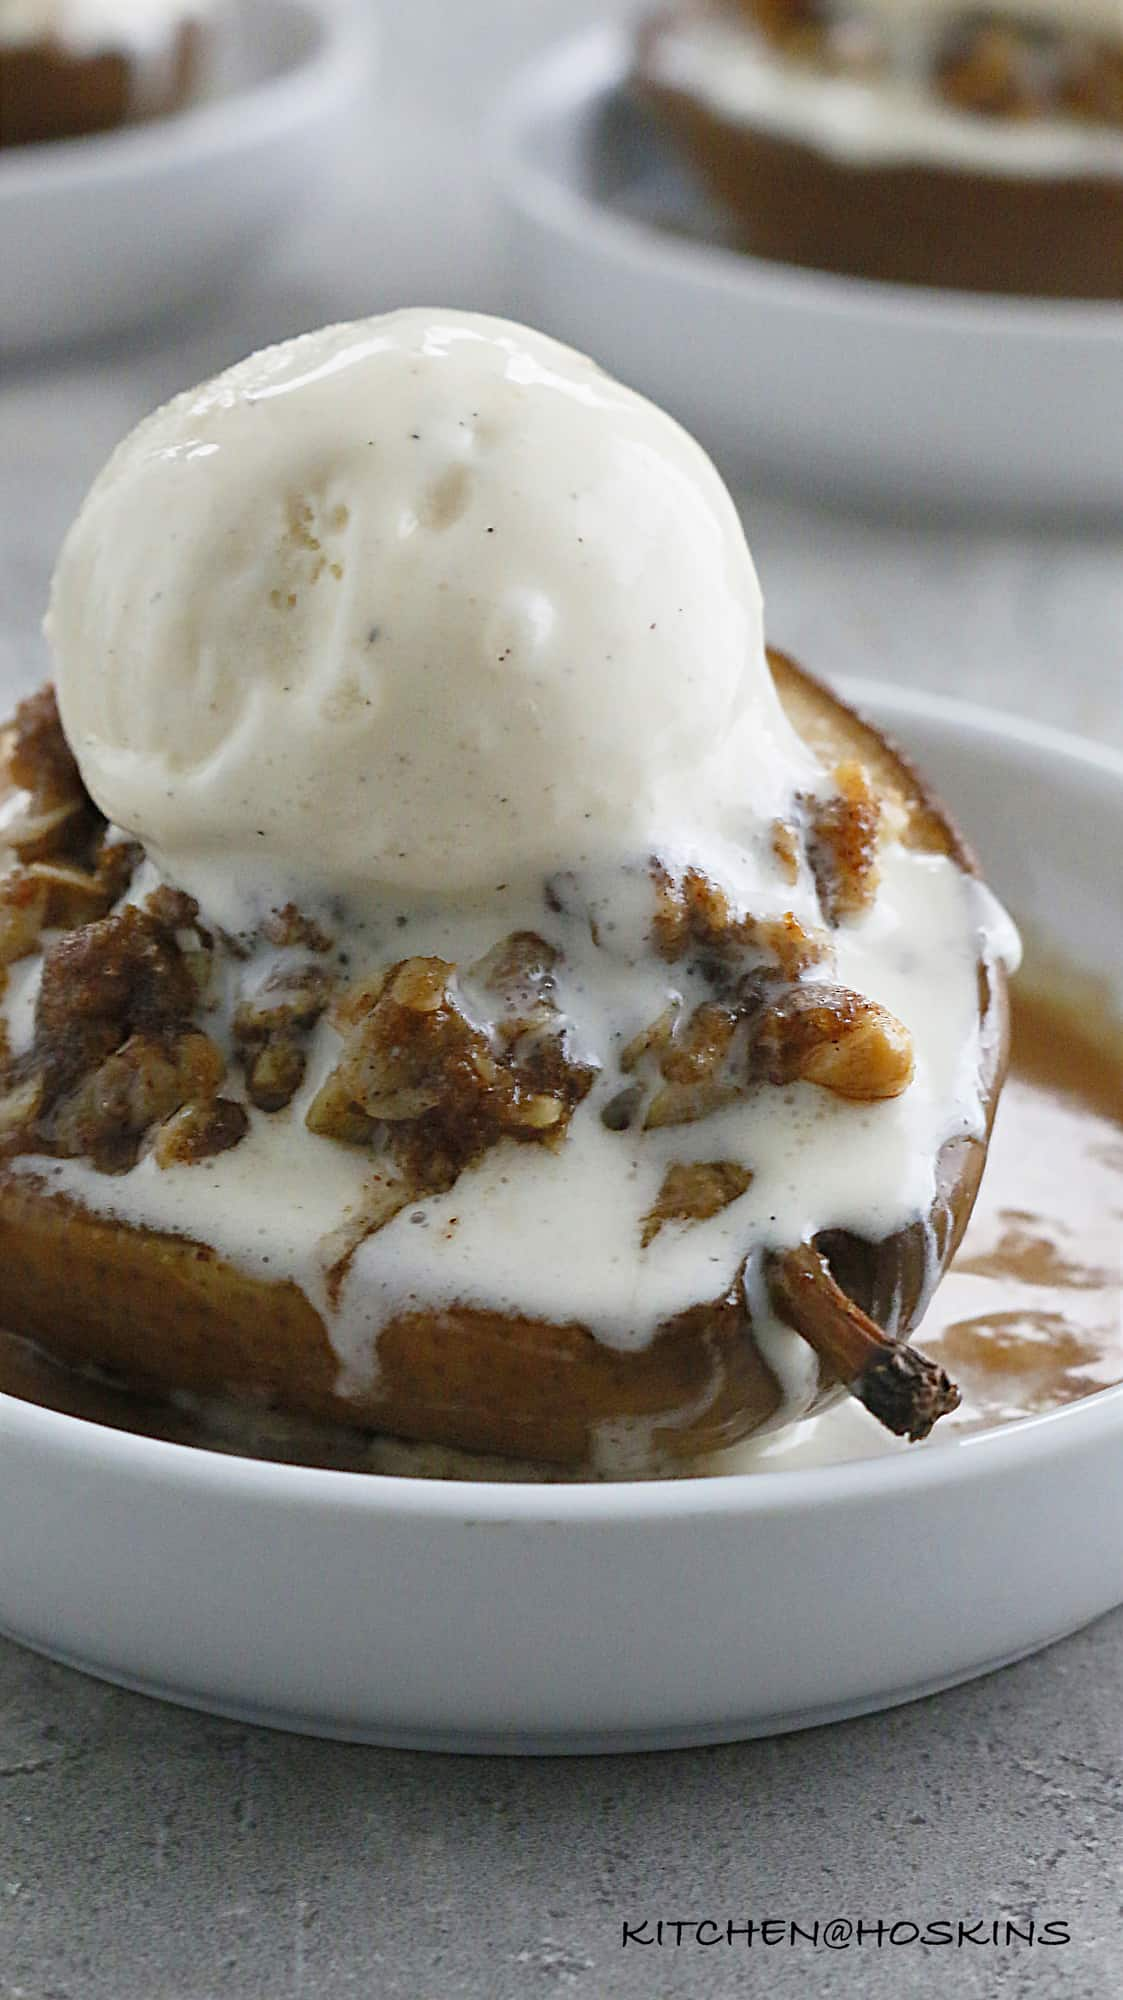 STFFED BAKED PEARS WITH